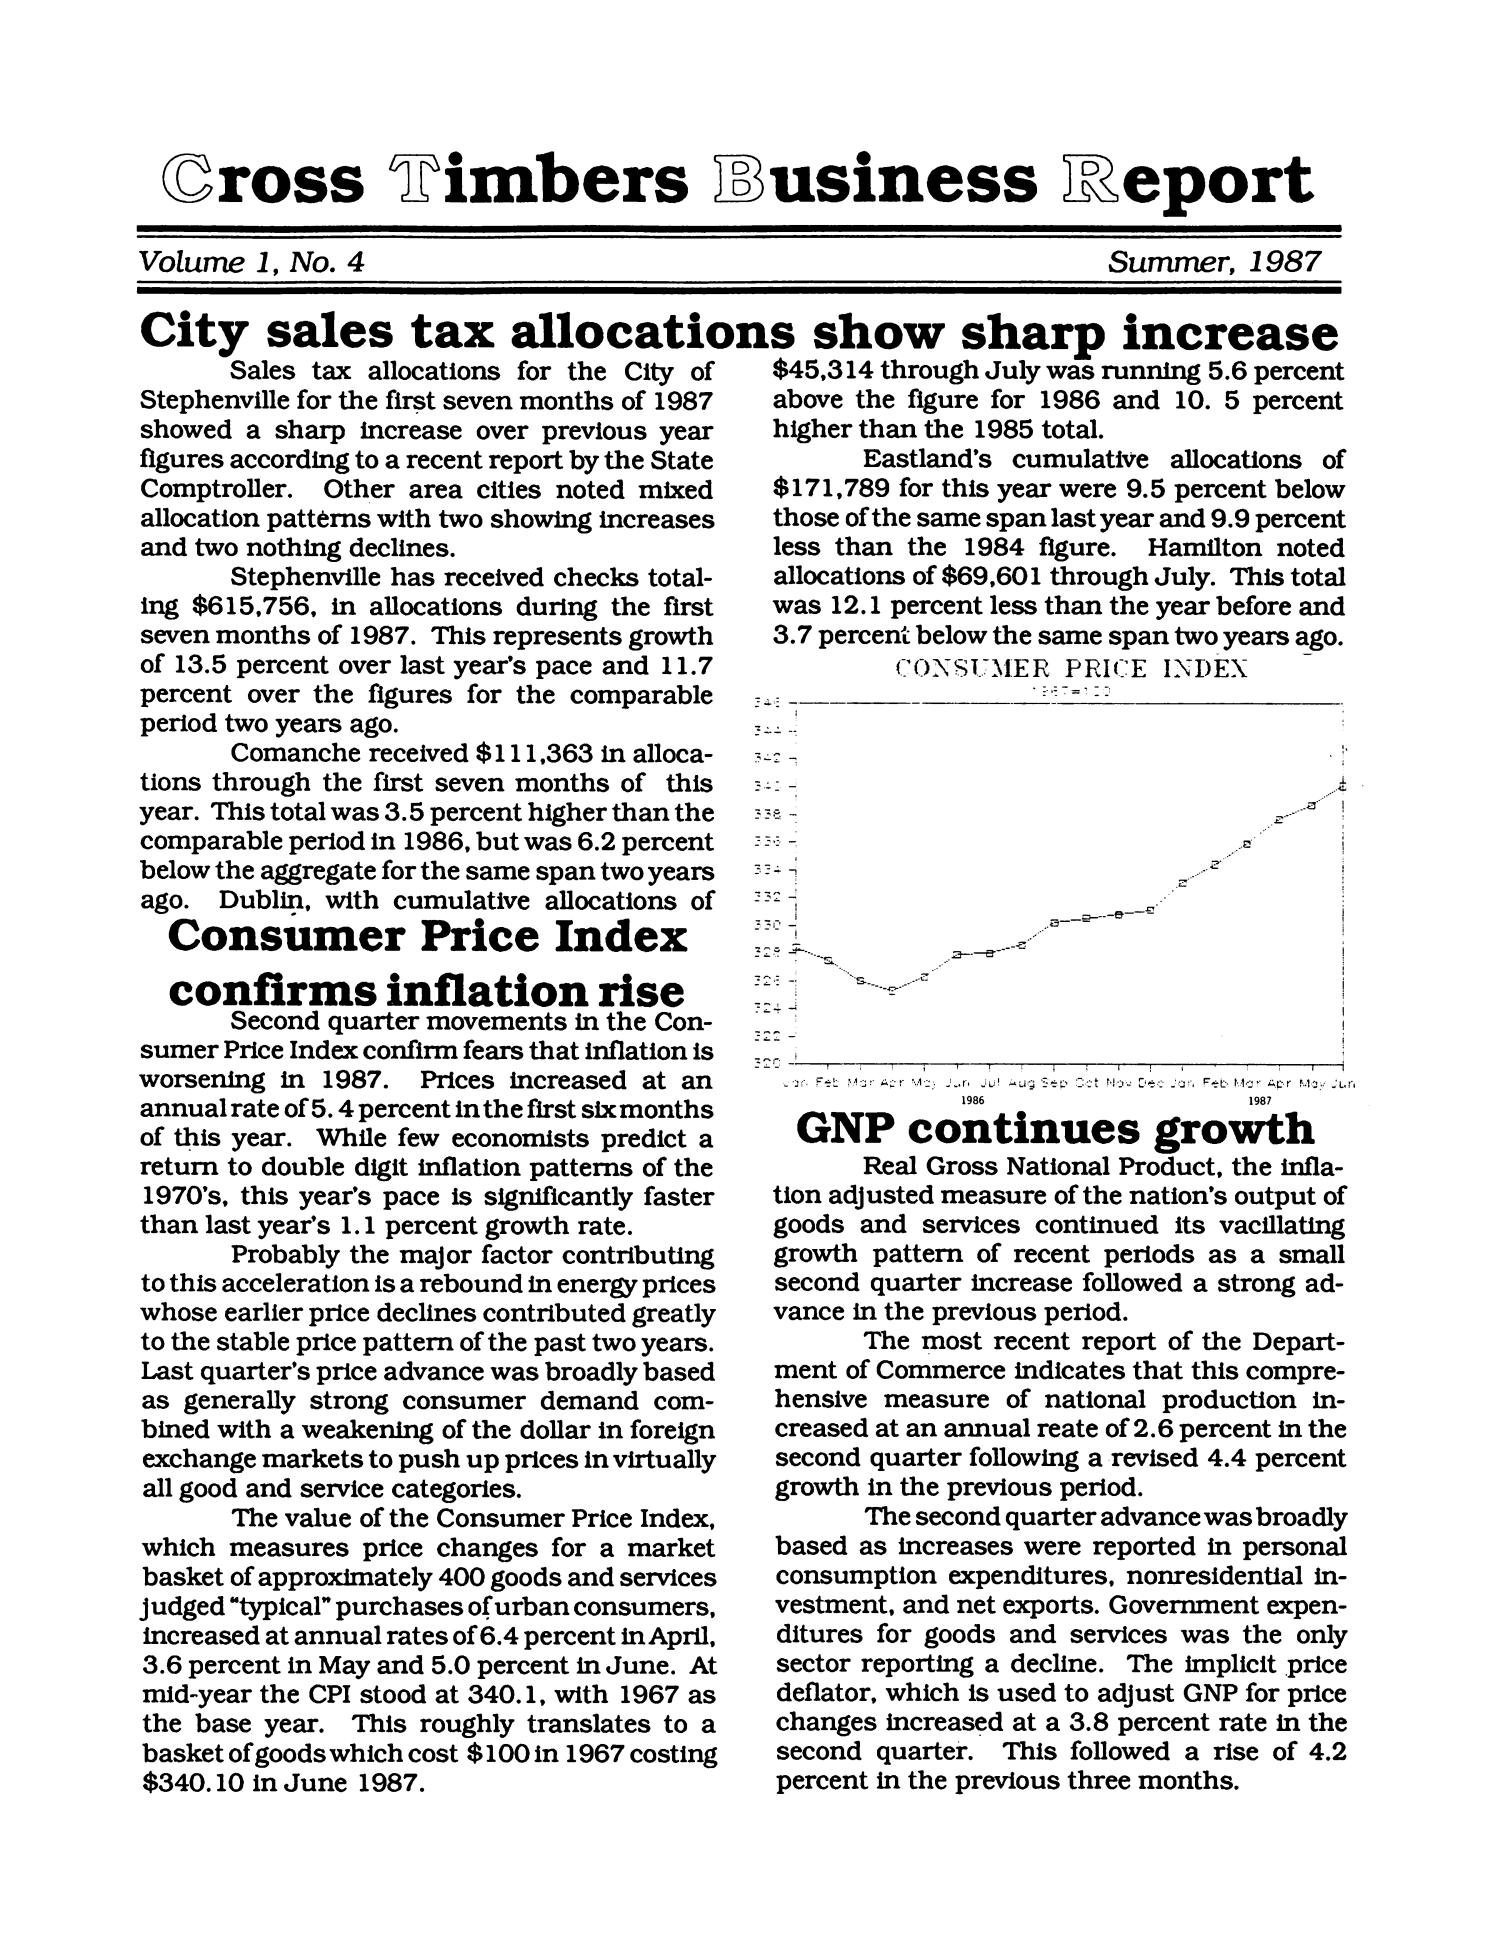 Cross Timbers Business Report, Volume 1, Number 4, Summer 1987                                                                                                      1